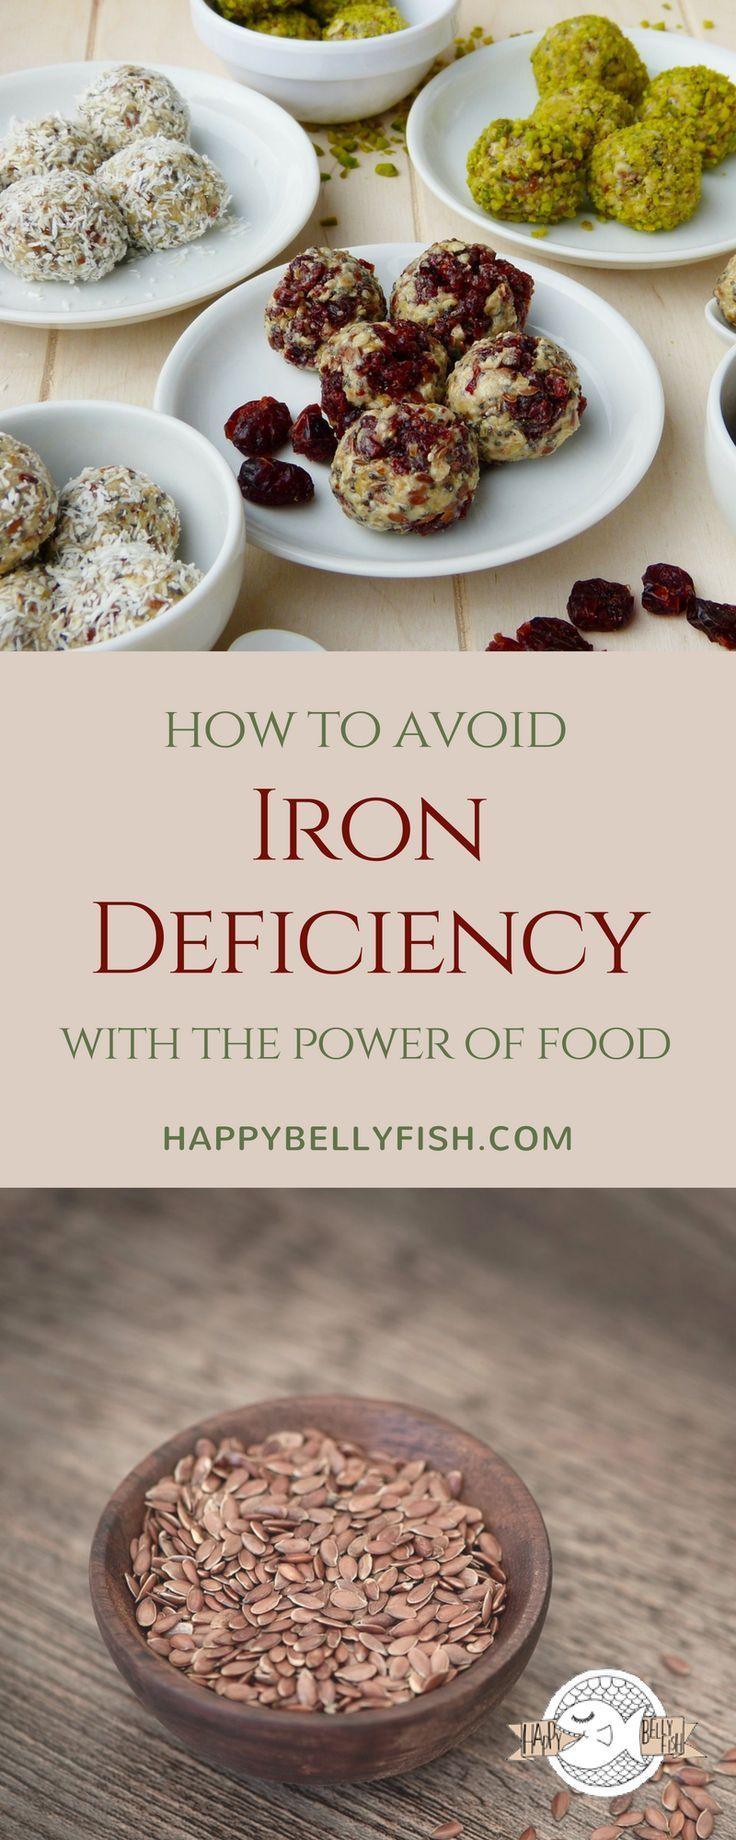 Iron Rich Foods For Vegans And Vegetarians How To Avoid